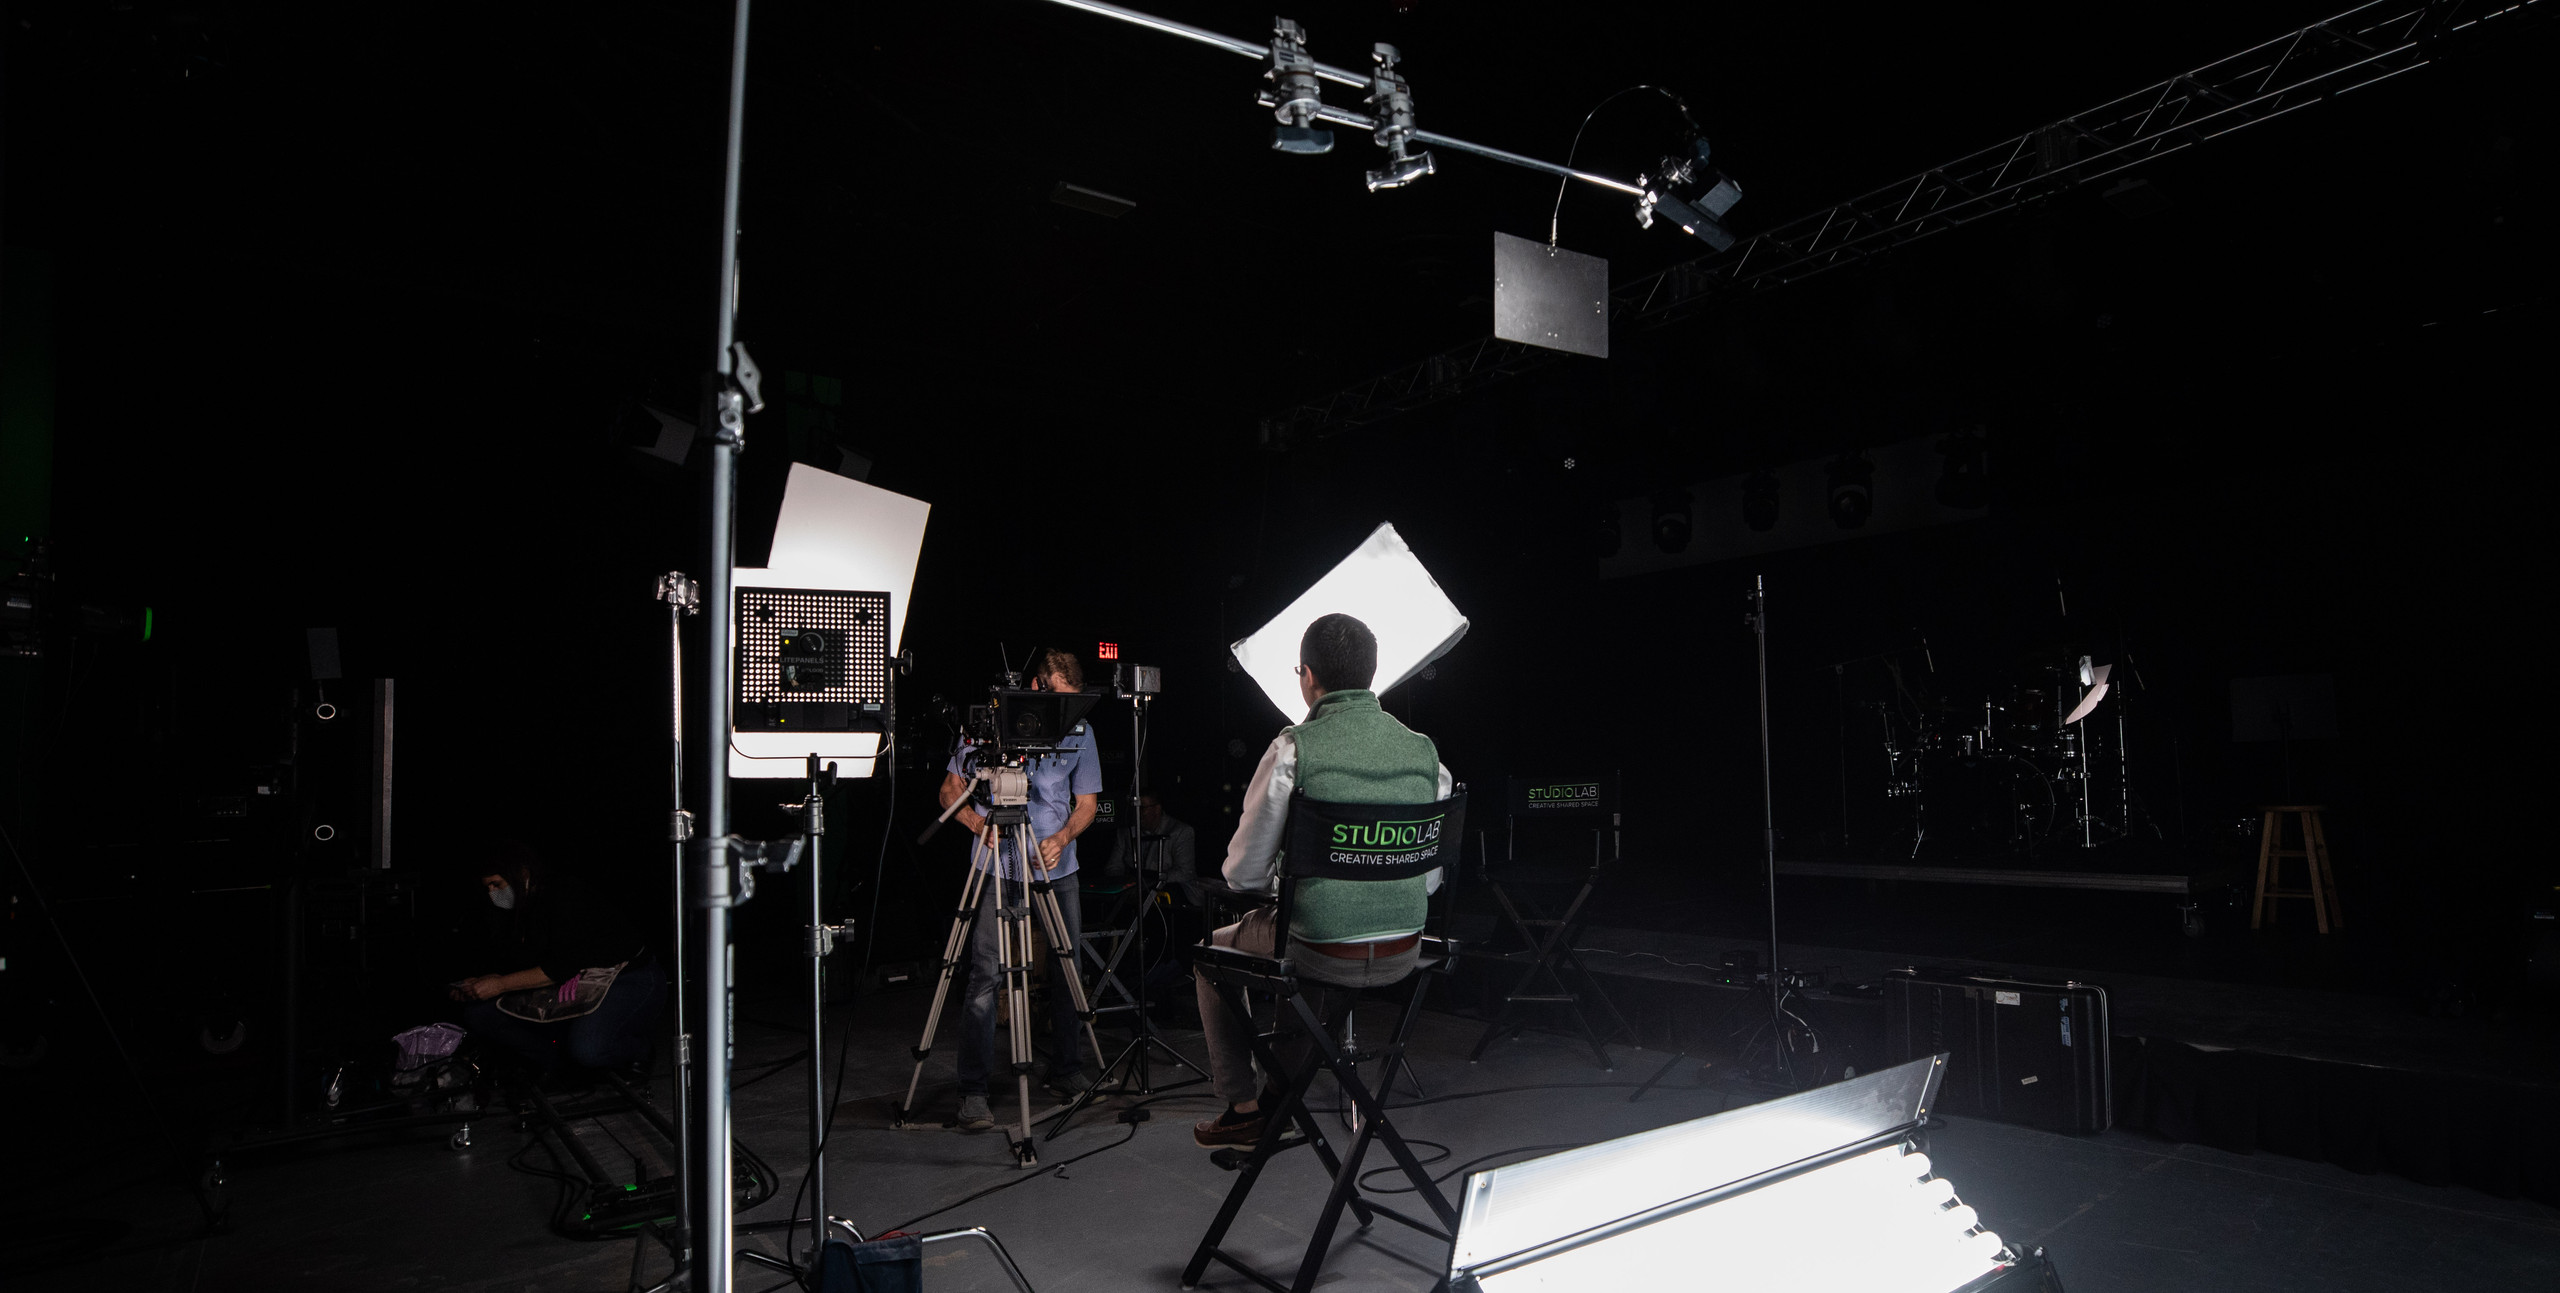 Commercial shoot for Corky Messner in studio